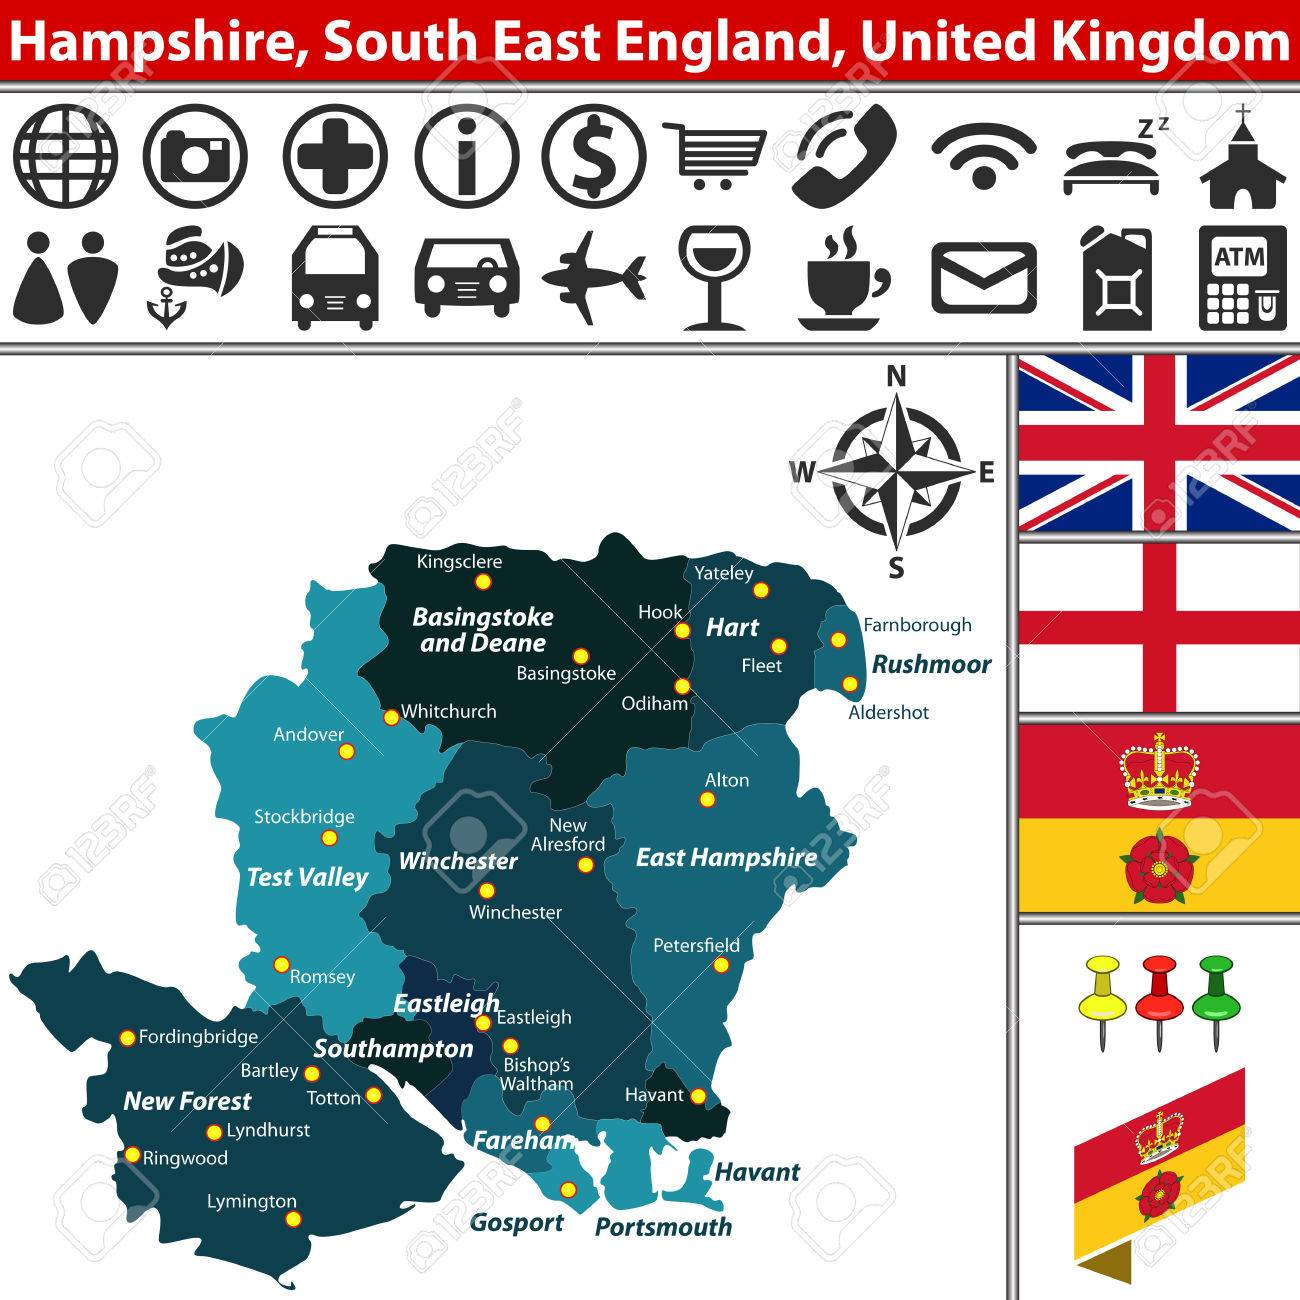 Map Of South East England.Vector Map Of Hampshire South East England United Kingdom With